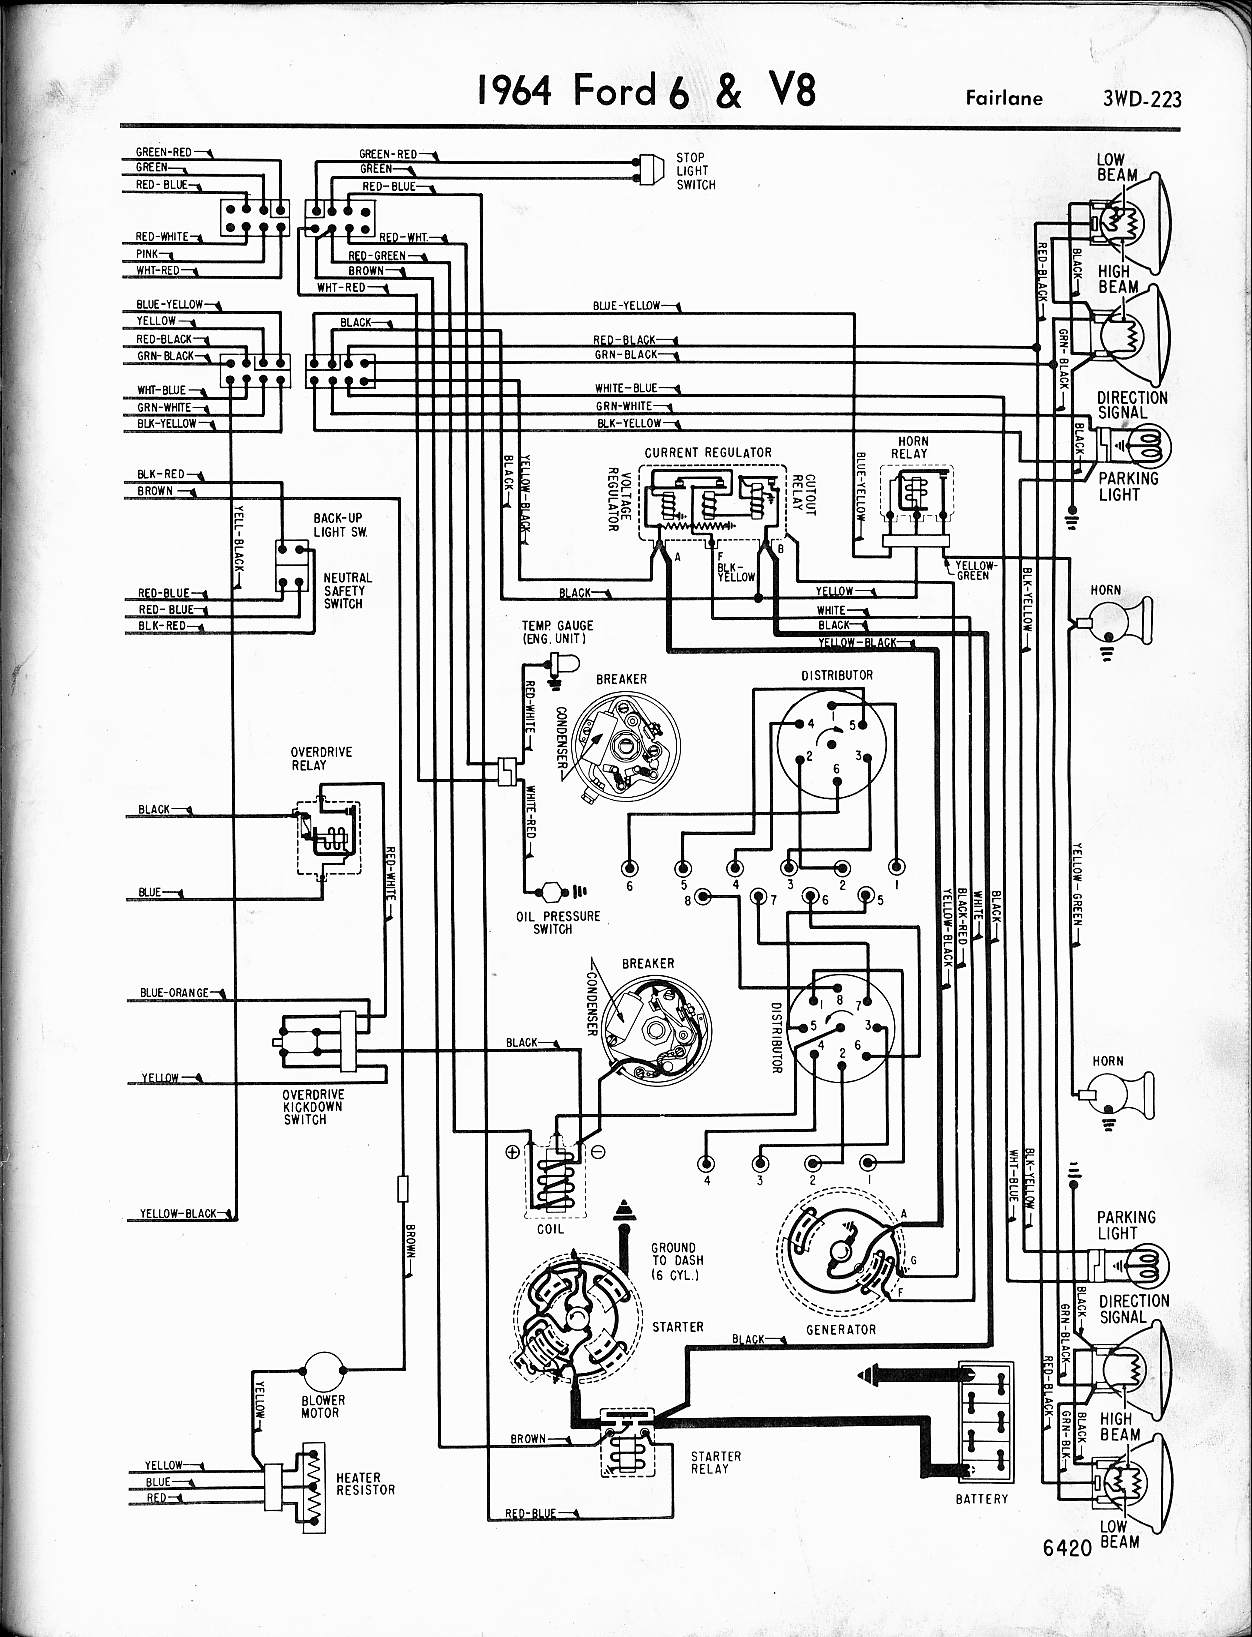 1966 ranchero fuse box wiring diagram site 1966 ranchero fuse box wiring diagram libraries 66 ranchero 1966 ranchero fuse box